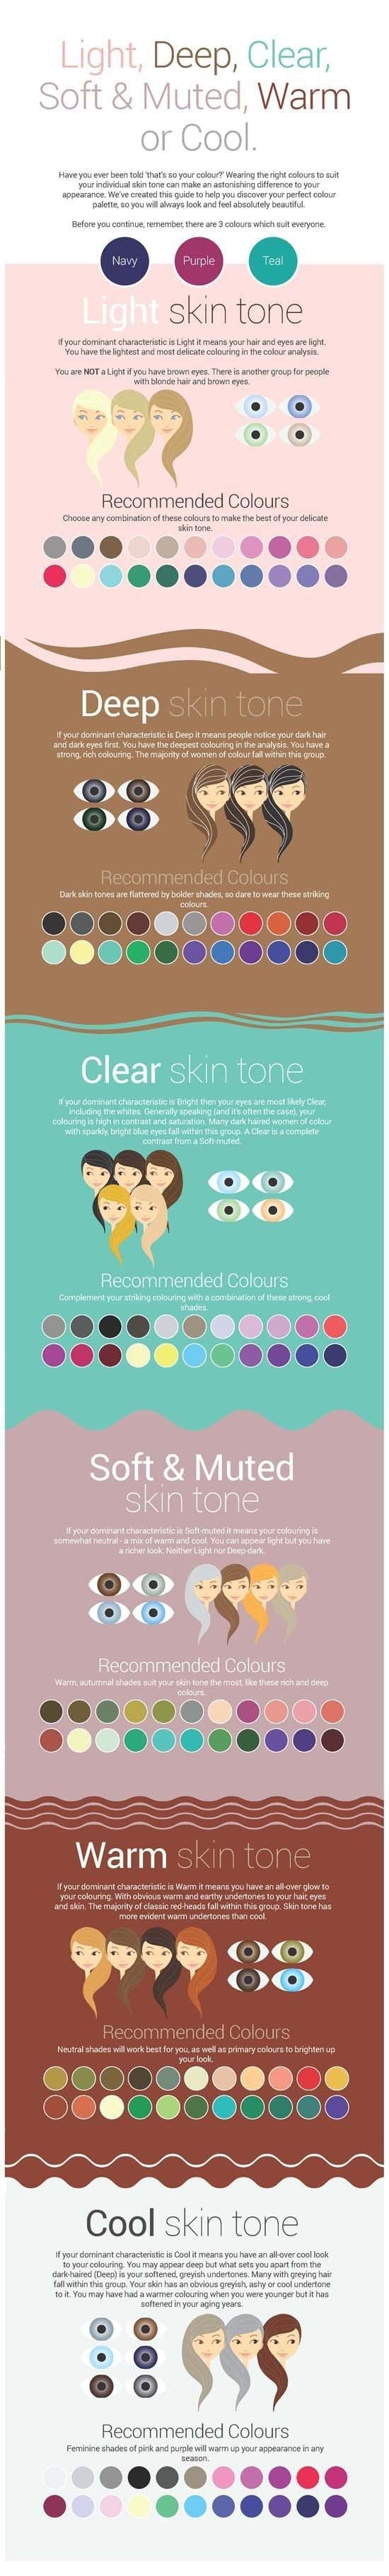 16 Beauty Hacks and Tips On How To Find The Right Makeup For Your Skin Tone: Beauty Tips, Idea, Beauty Hack, Colors, Make-Up Tipps, Skintone, Make-Up-Farben, Hair